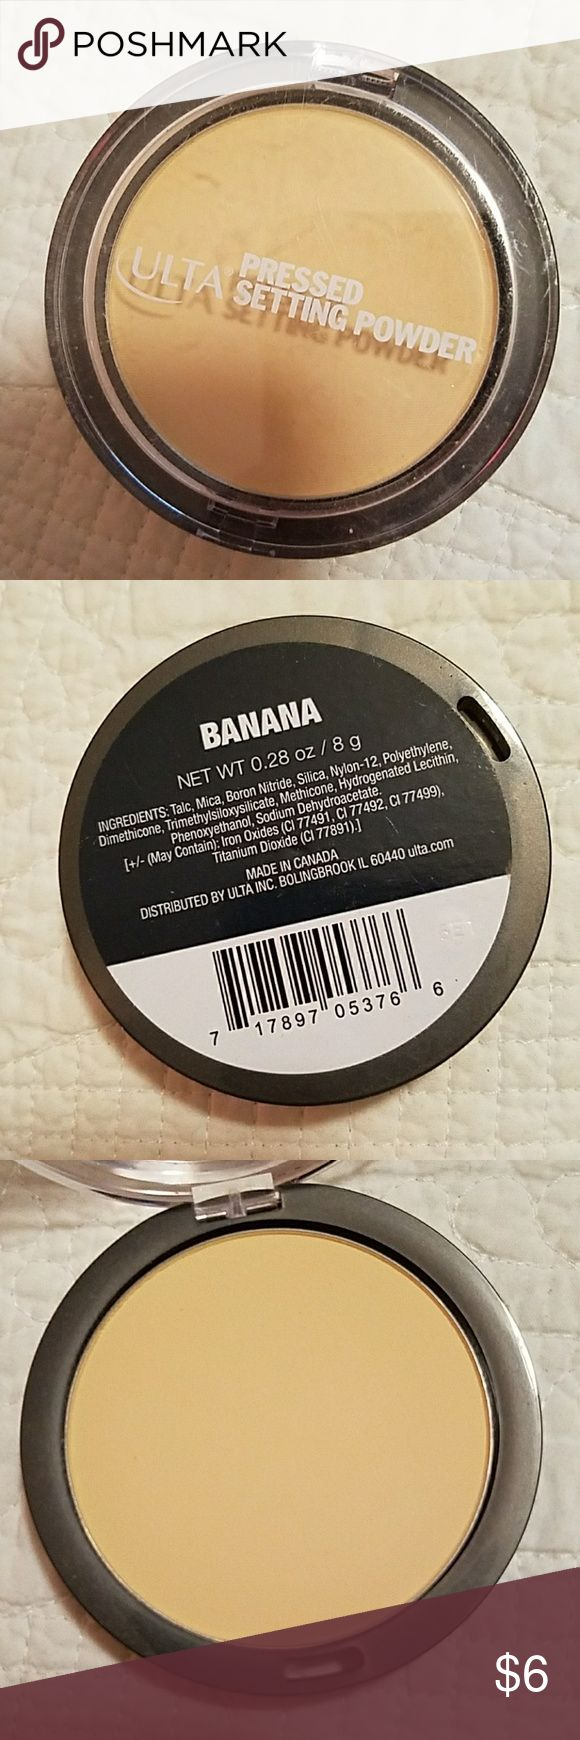 Ulta Pressed Banana Setting Powder new only tried once ulta Makeup Face Powder